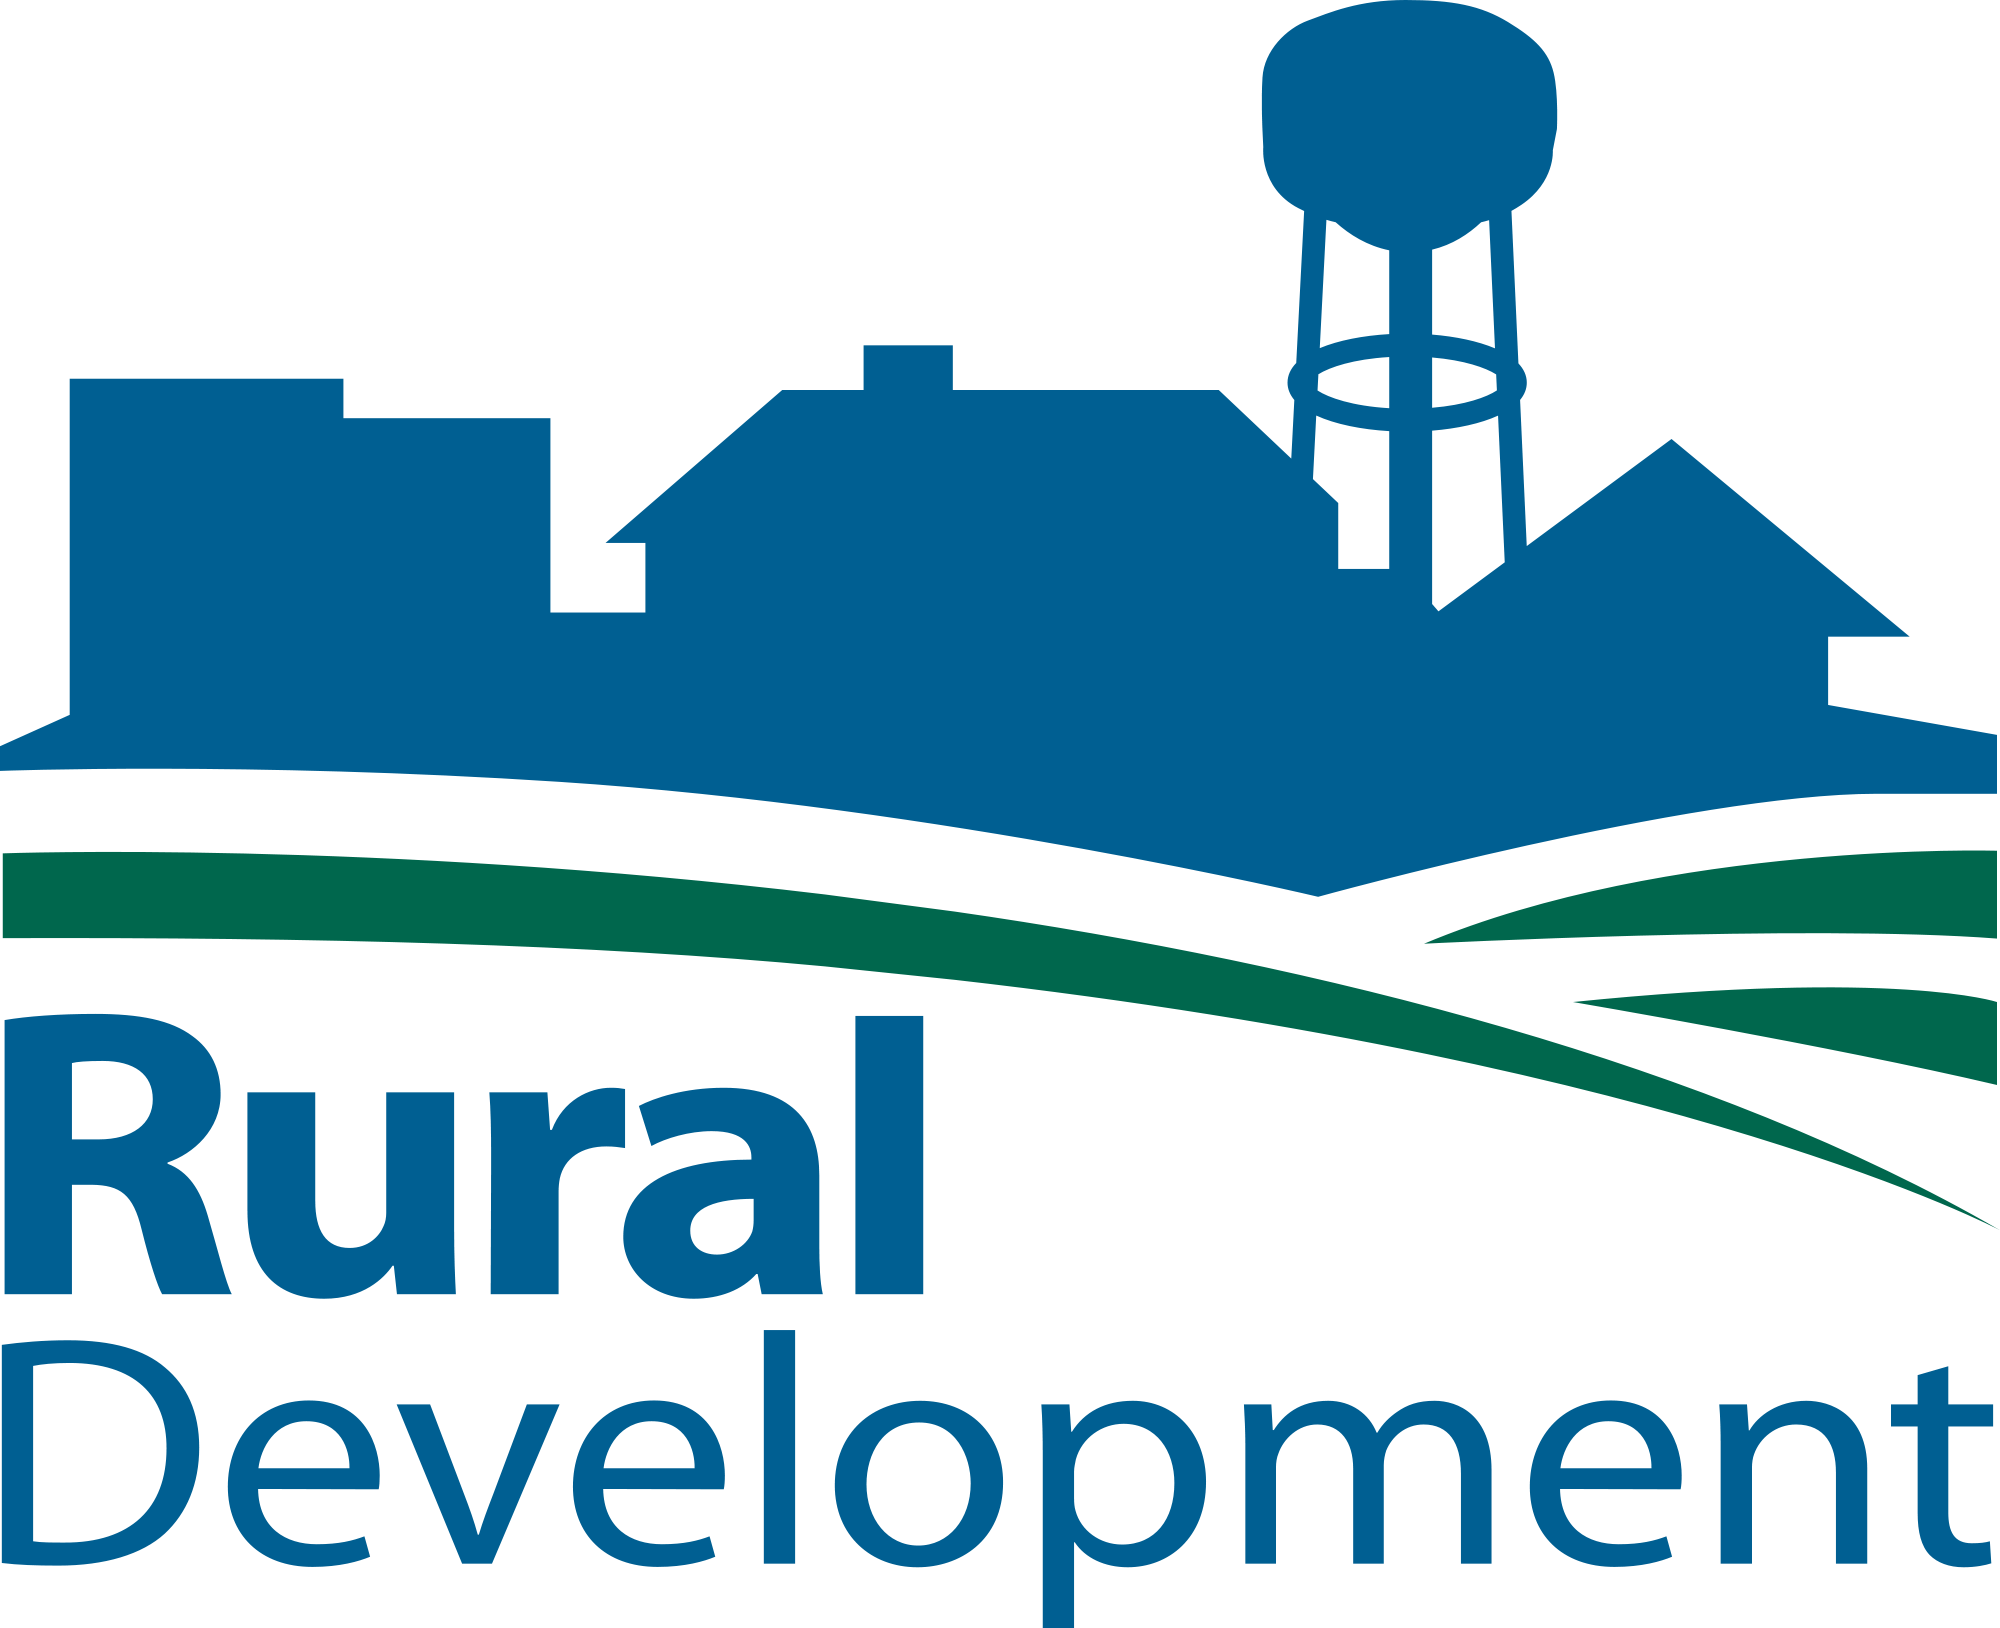 USDA_rural_logo.png